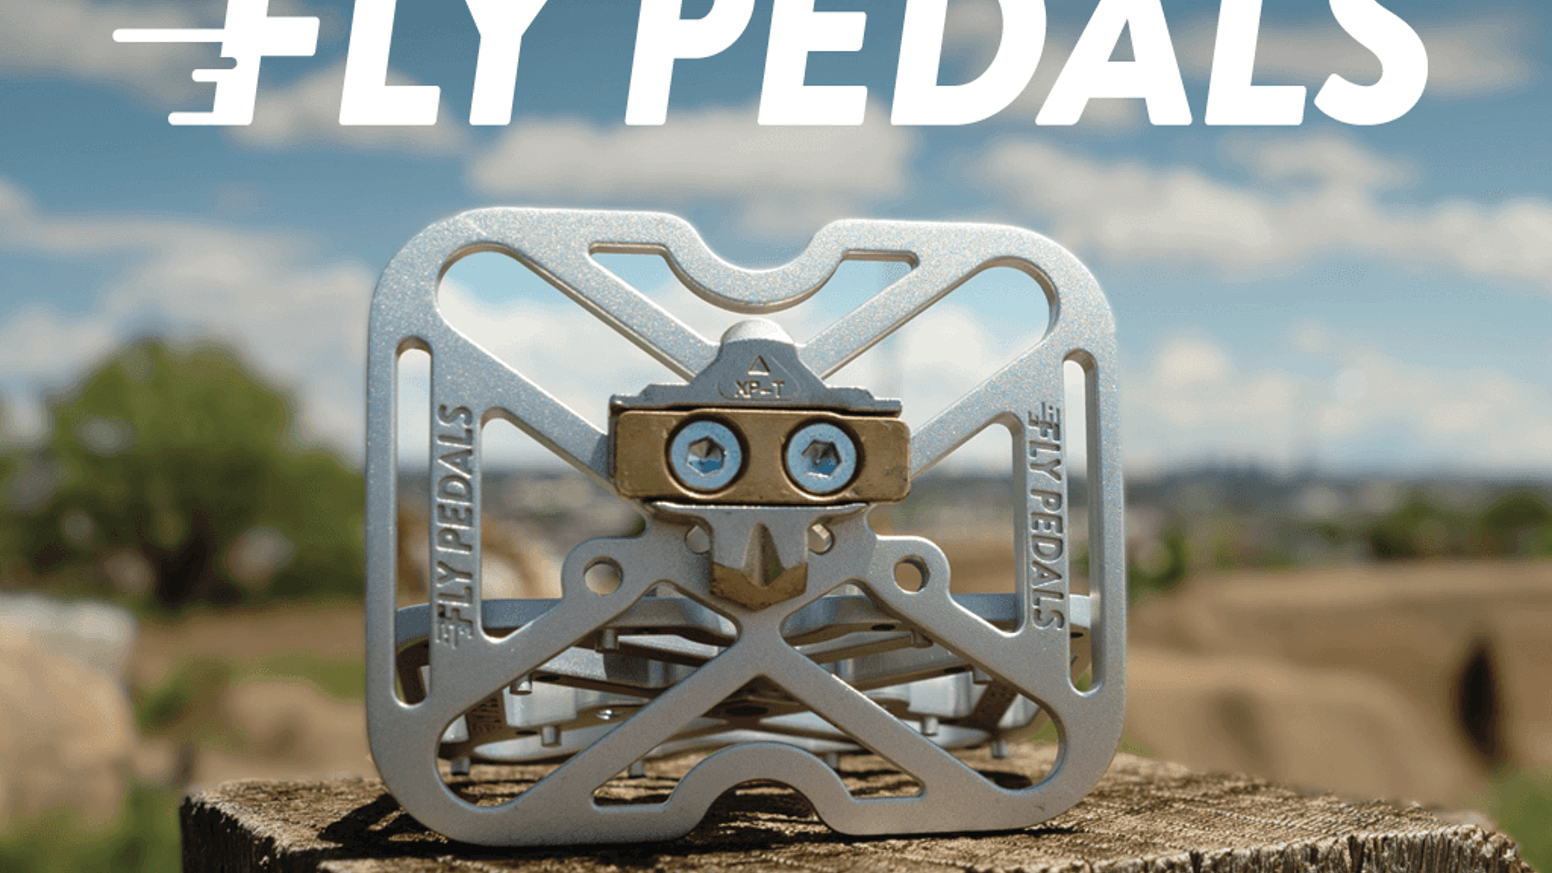 Convert clipless pedals to platform pedals instantly for casual riding. Version 2 : lighter, sleeker, and with more features!